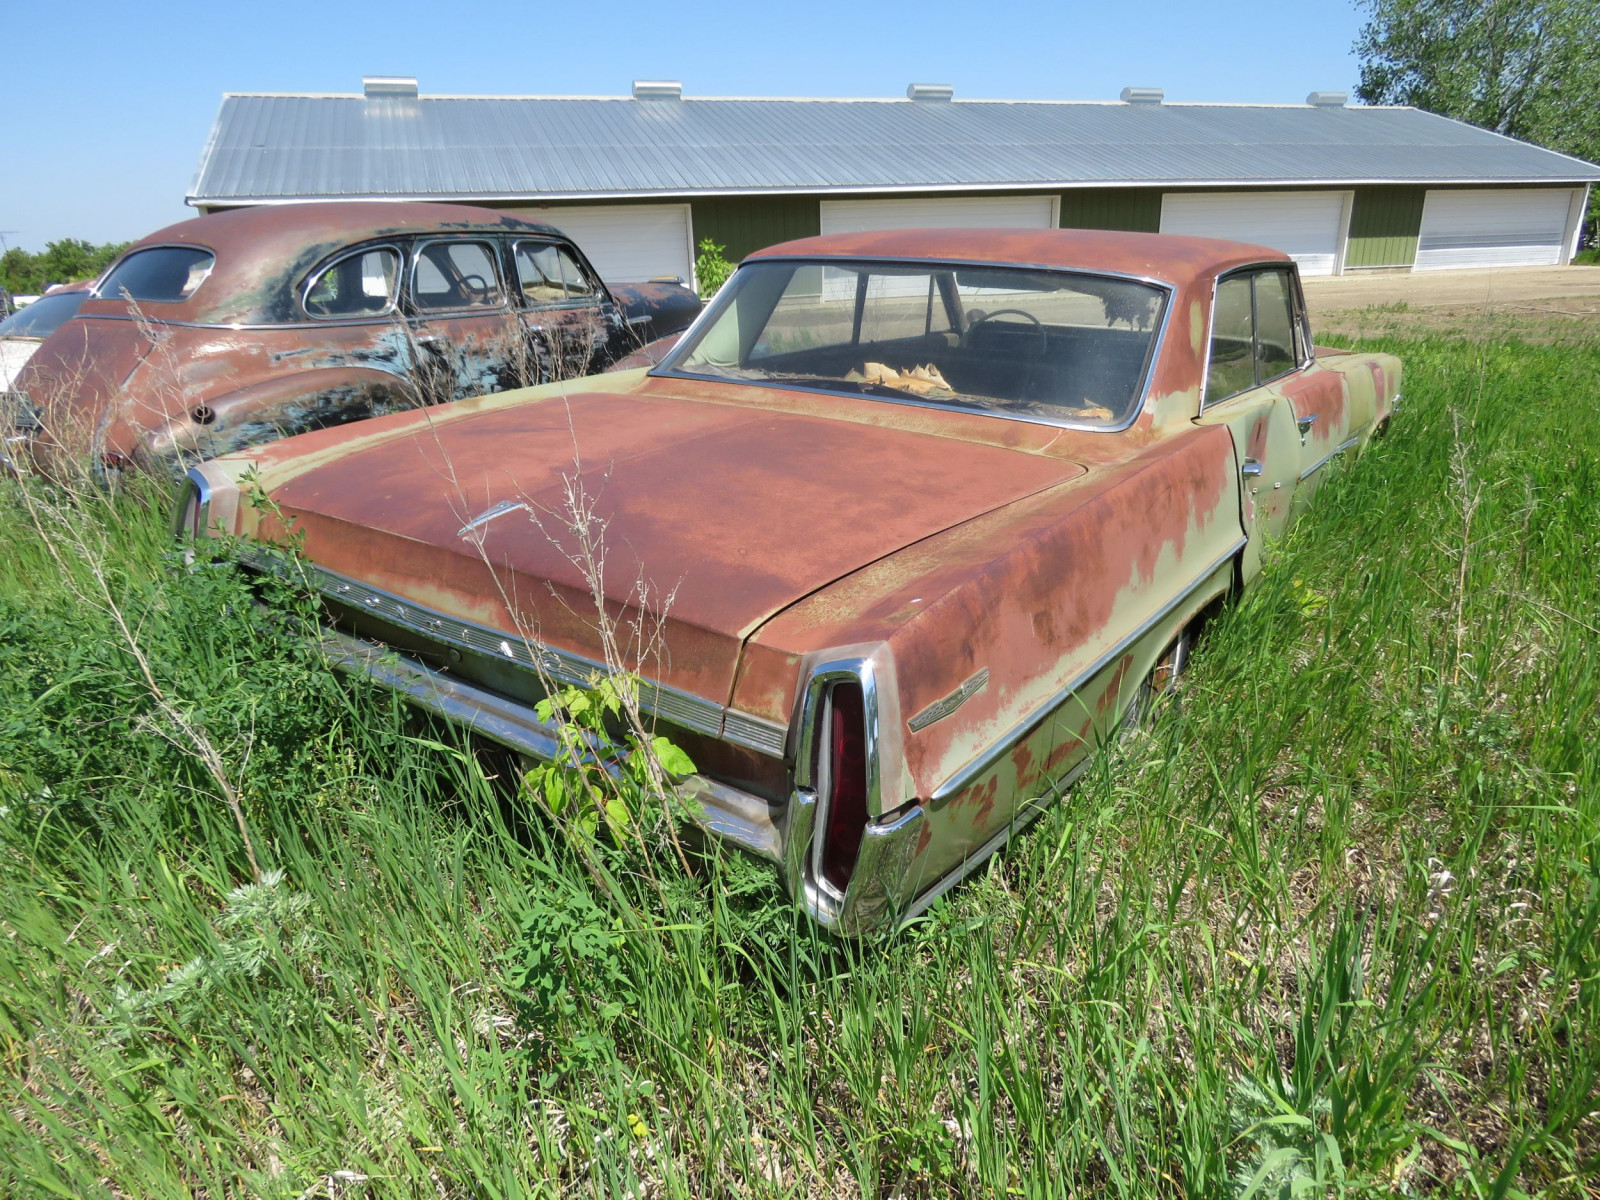 1964 Pontiac Catalina 4dr Sedan for Project or parts - Image 5